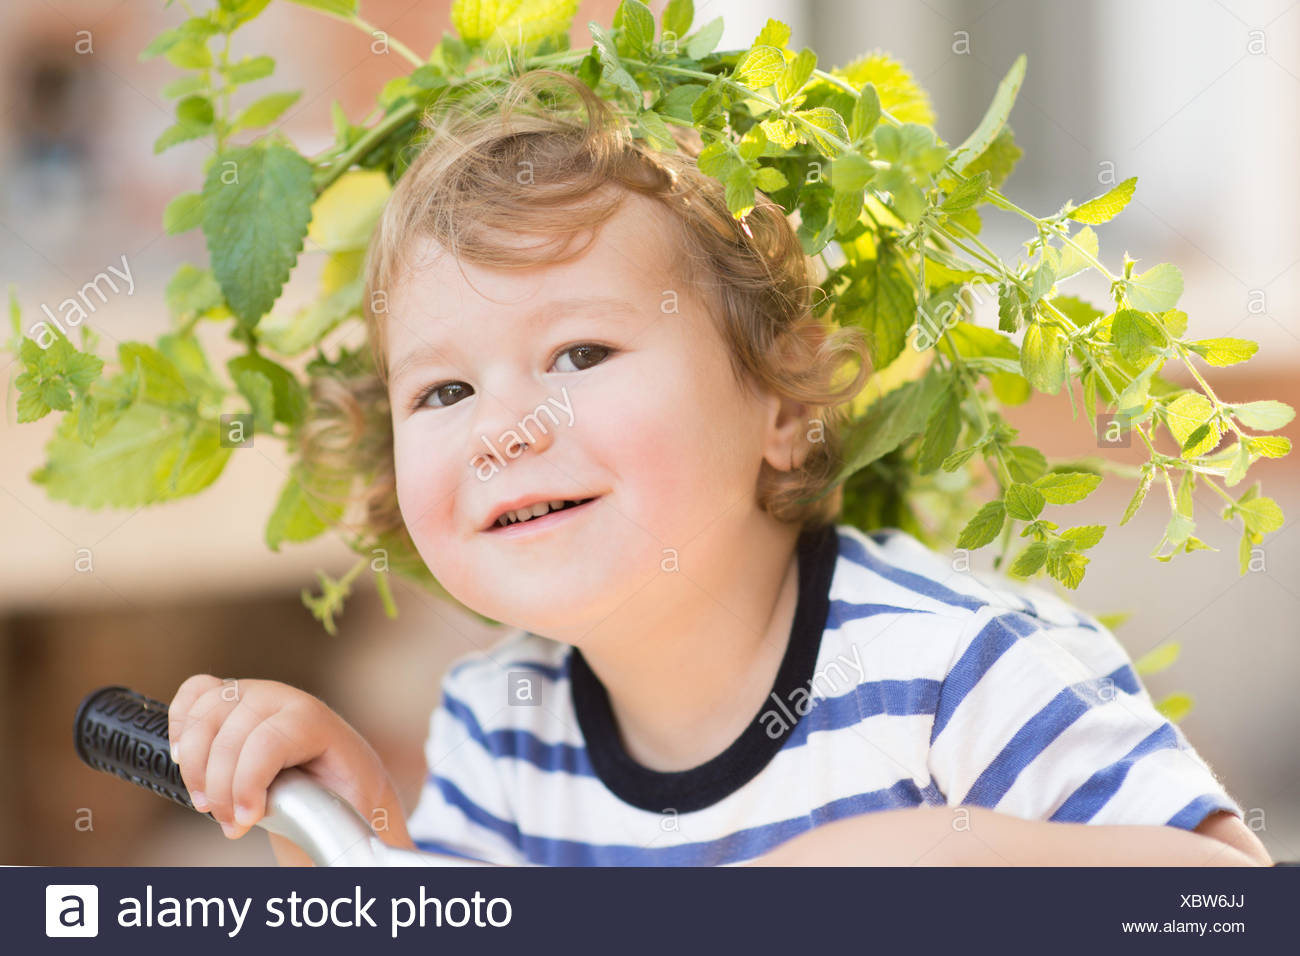 USA, South Carolina, Greenville County, Greenville, Portrait of boy (2-3) wearing wreath - Stock Image